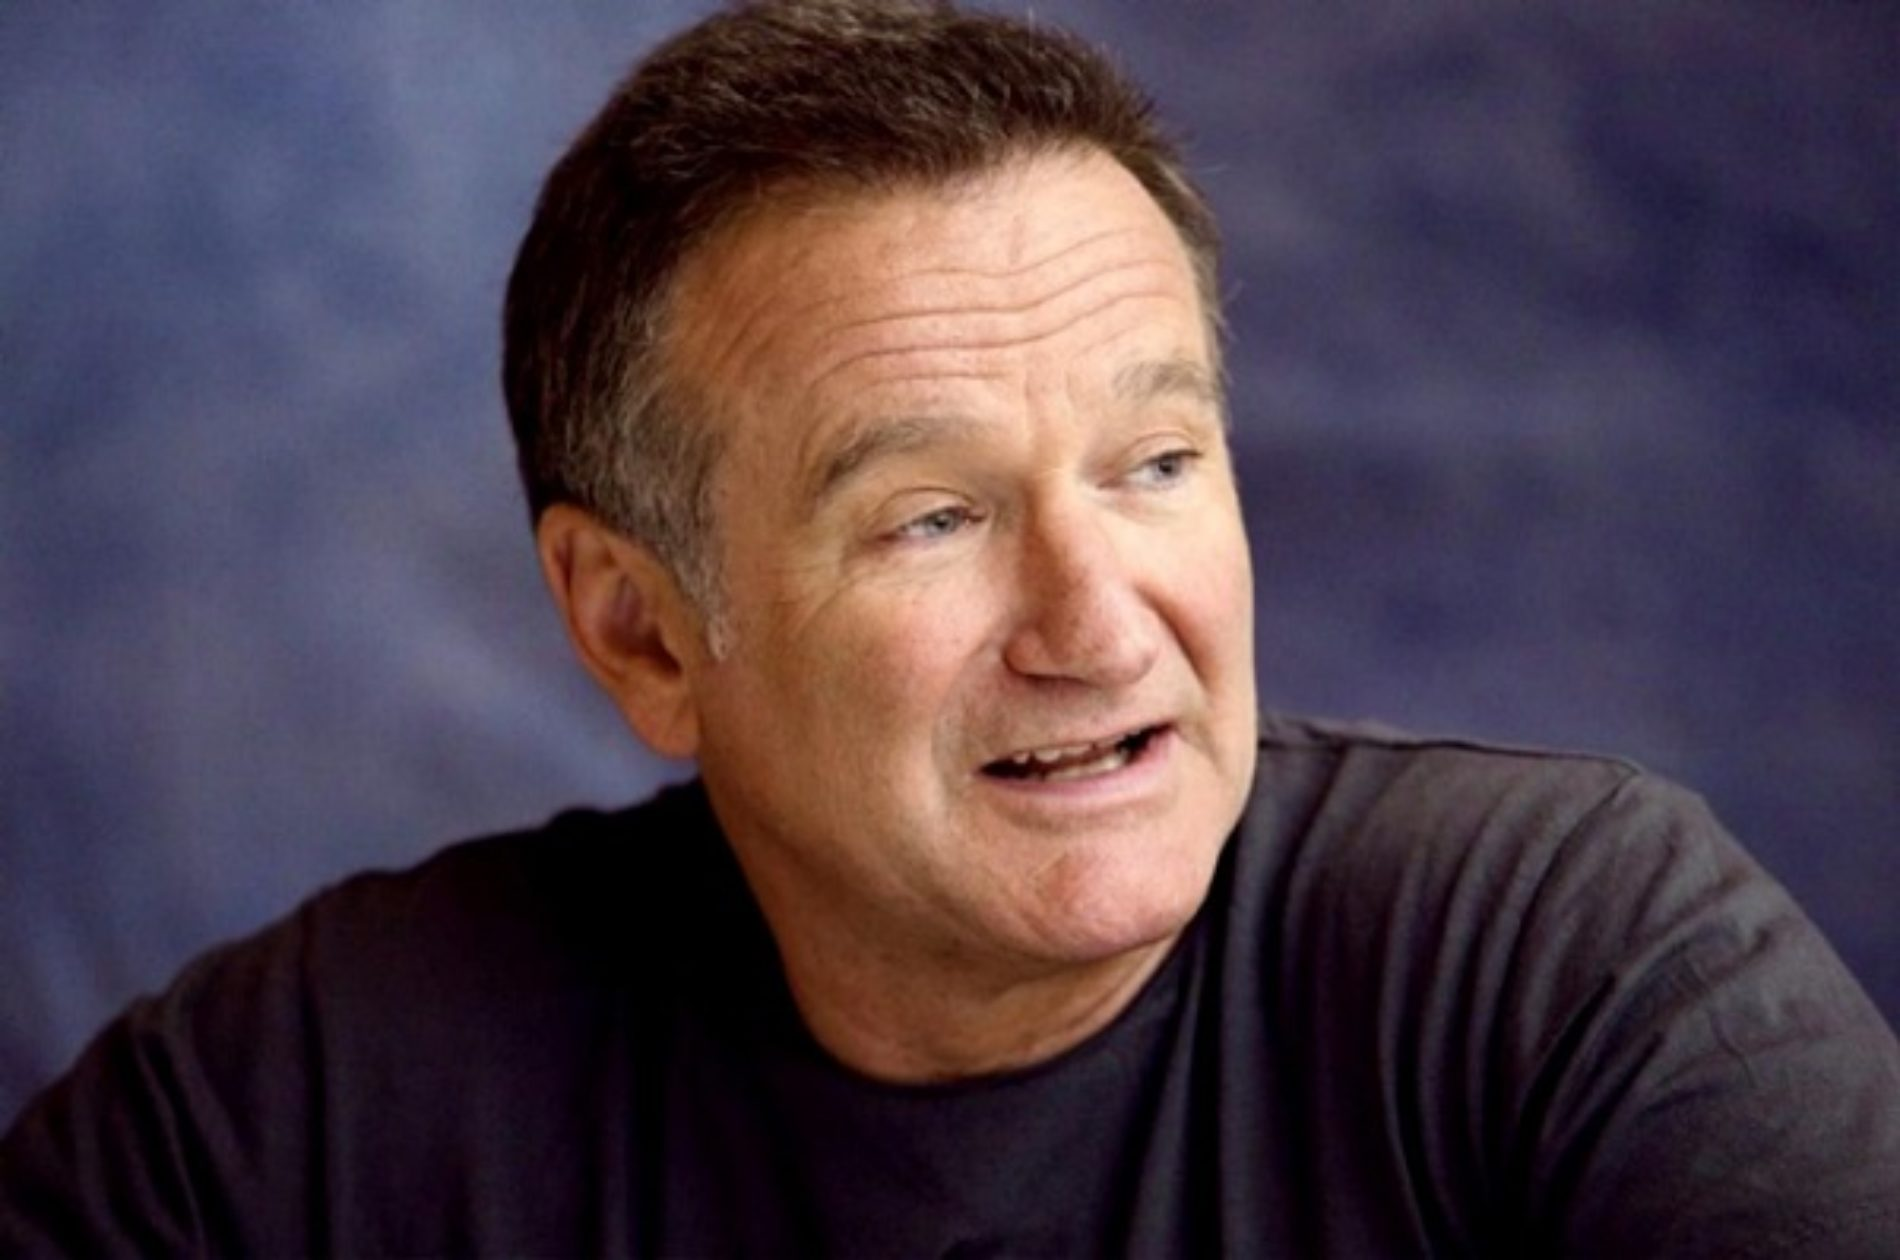 Anti-Gay Church Group To Protest At Actor Robin Williams' Memorial Service